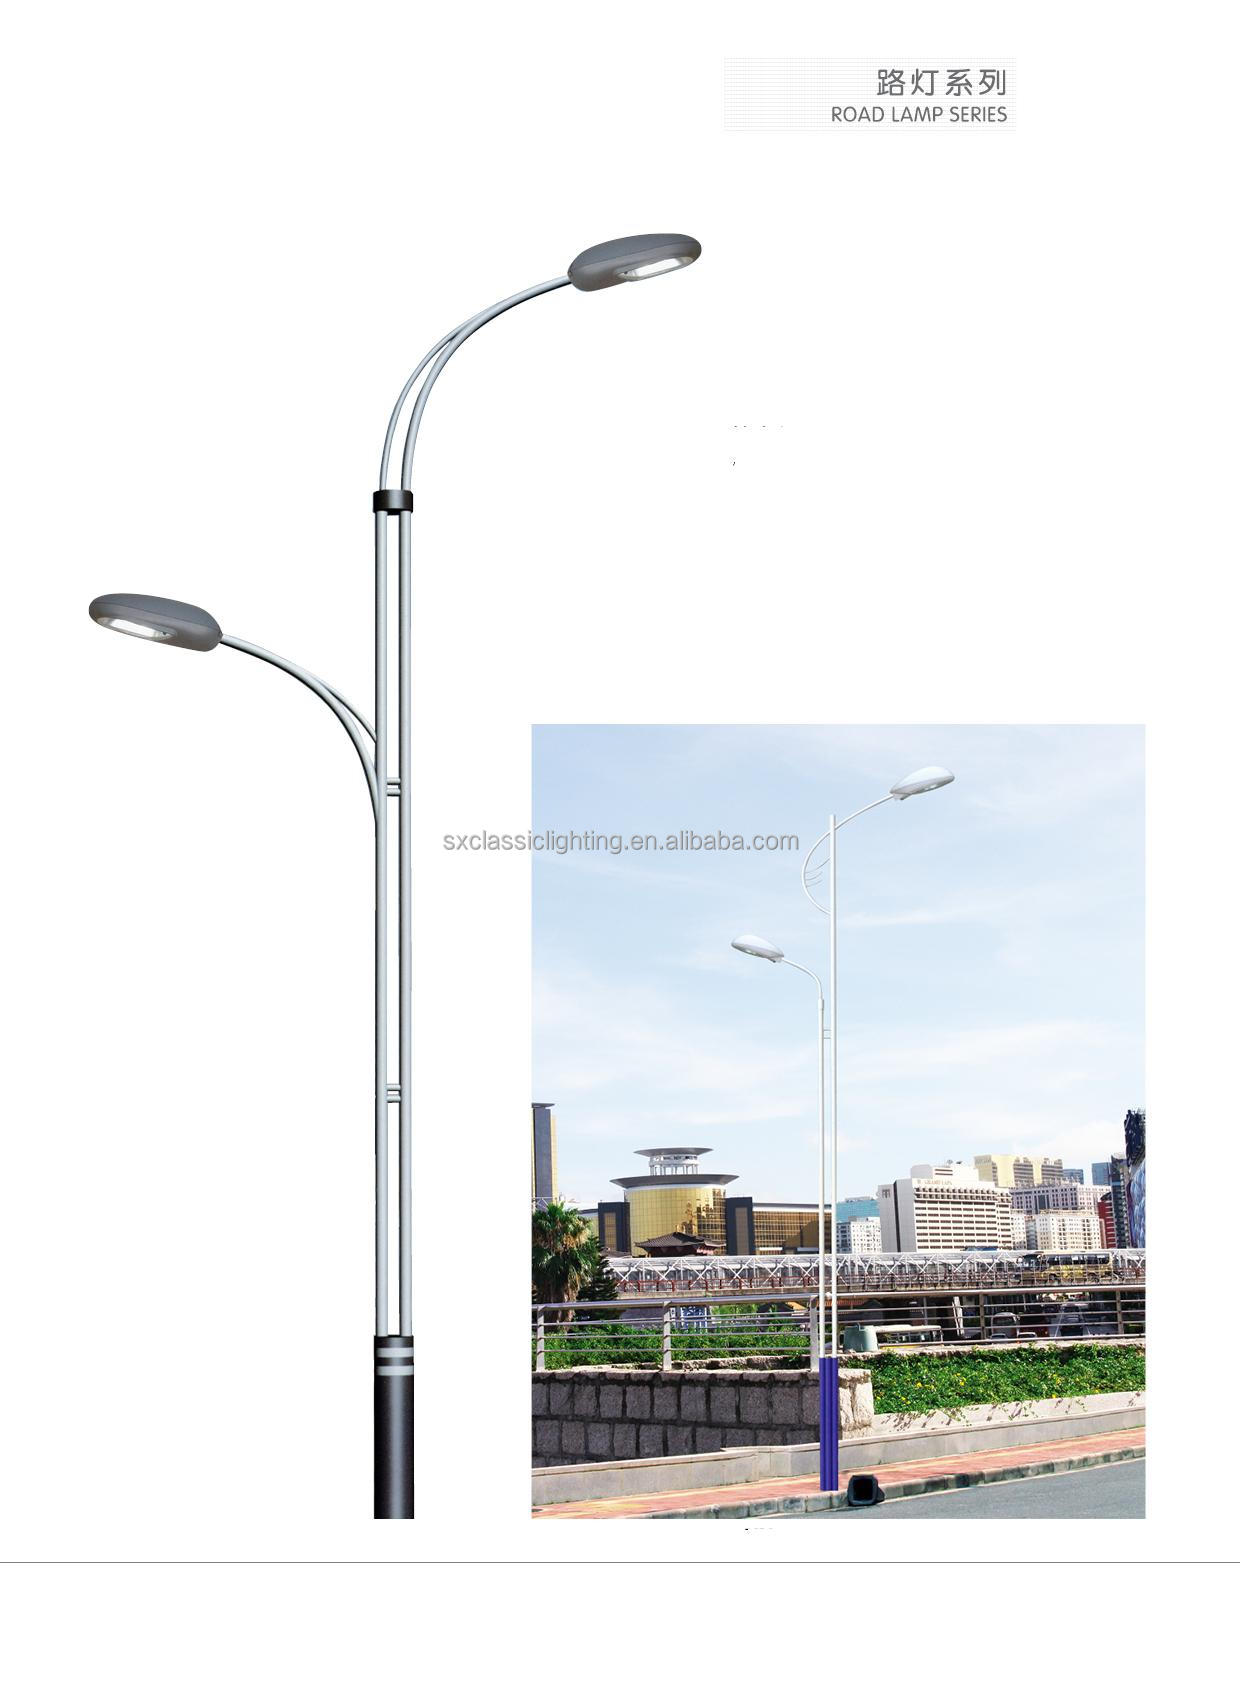 Fiberglass Light Post : Fiberglass street light pole iron